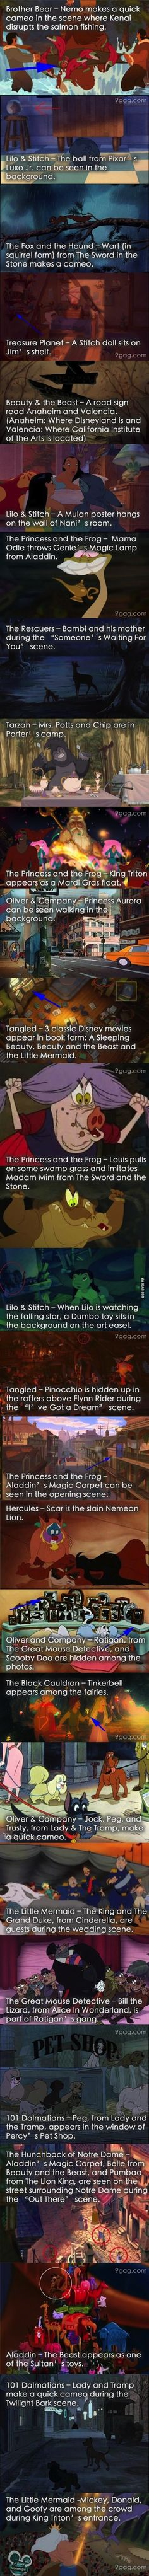 hidden gem, hidden things in movies, hidden things in disney movies, princess and the frog funny, disney lilo, disney hidden things, disney movies in disney movies, things hidden in disney movies, funny lilo and stitch